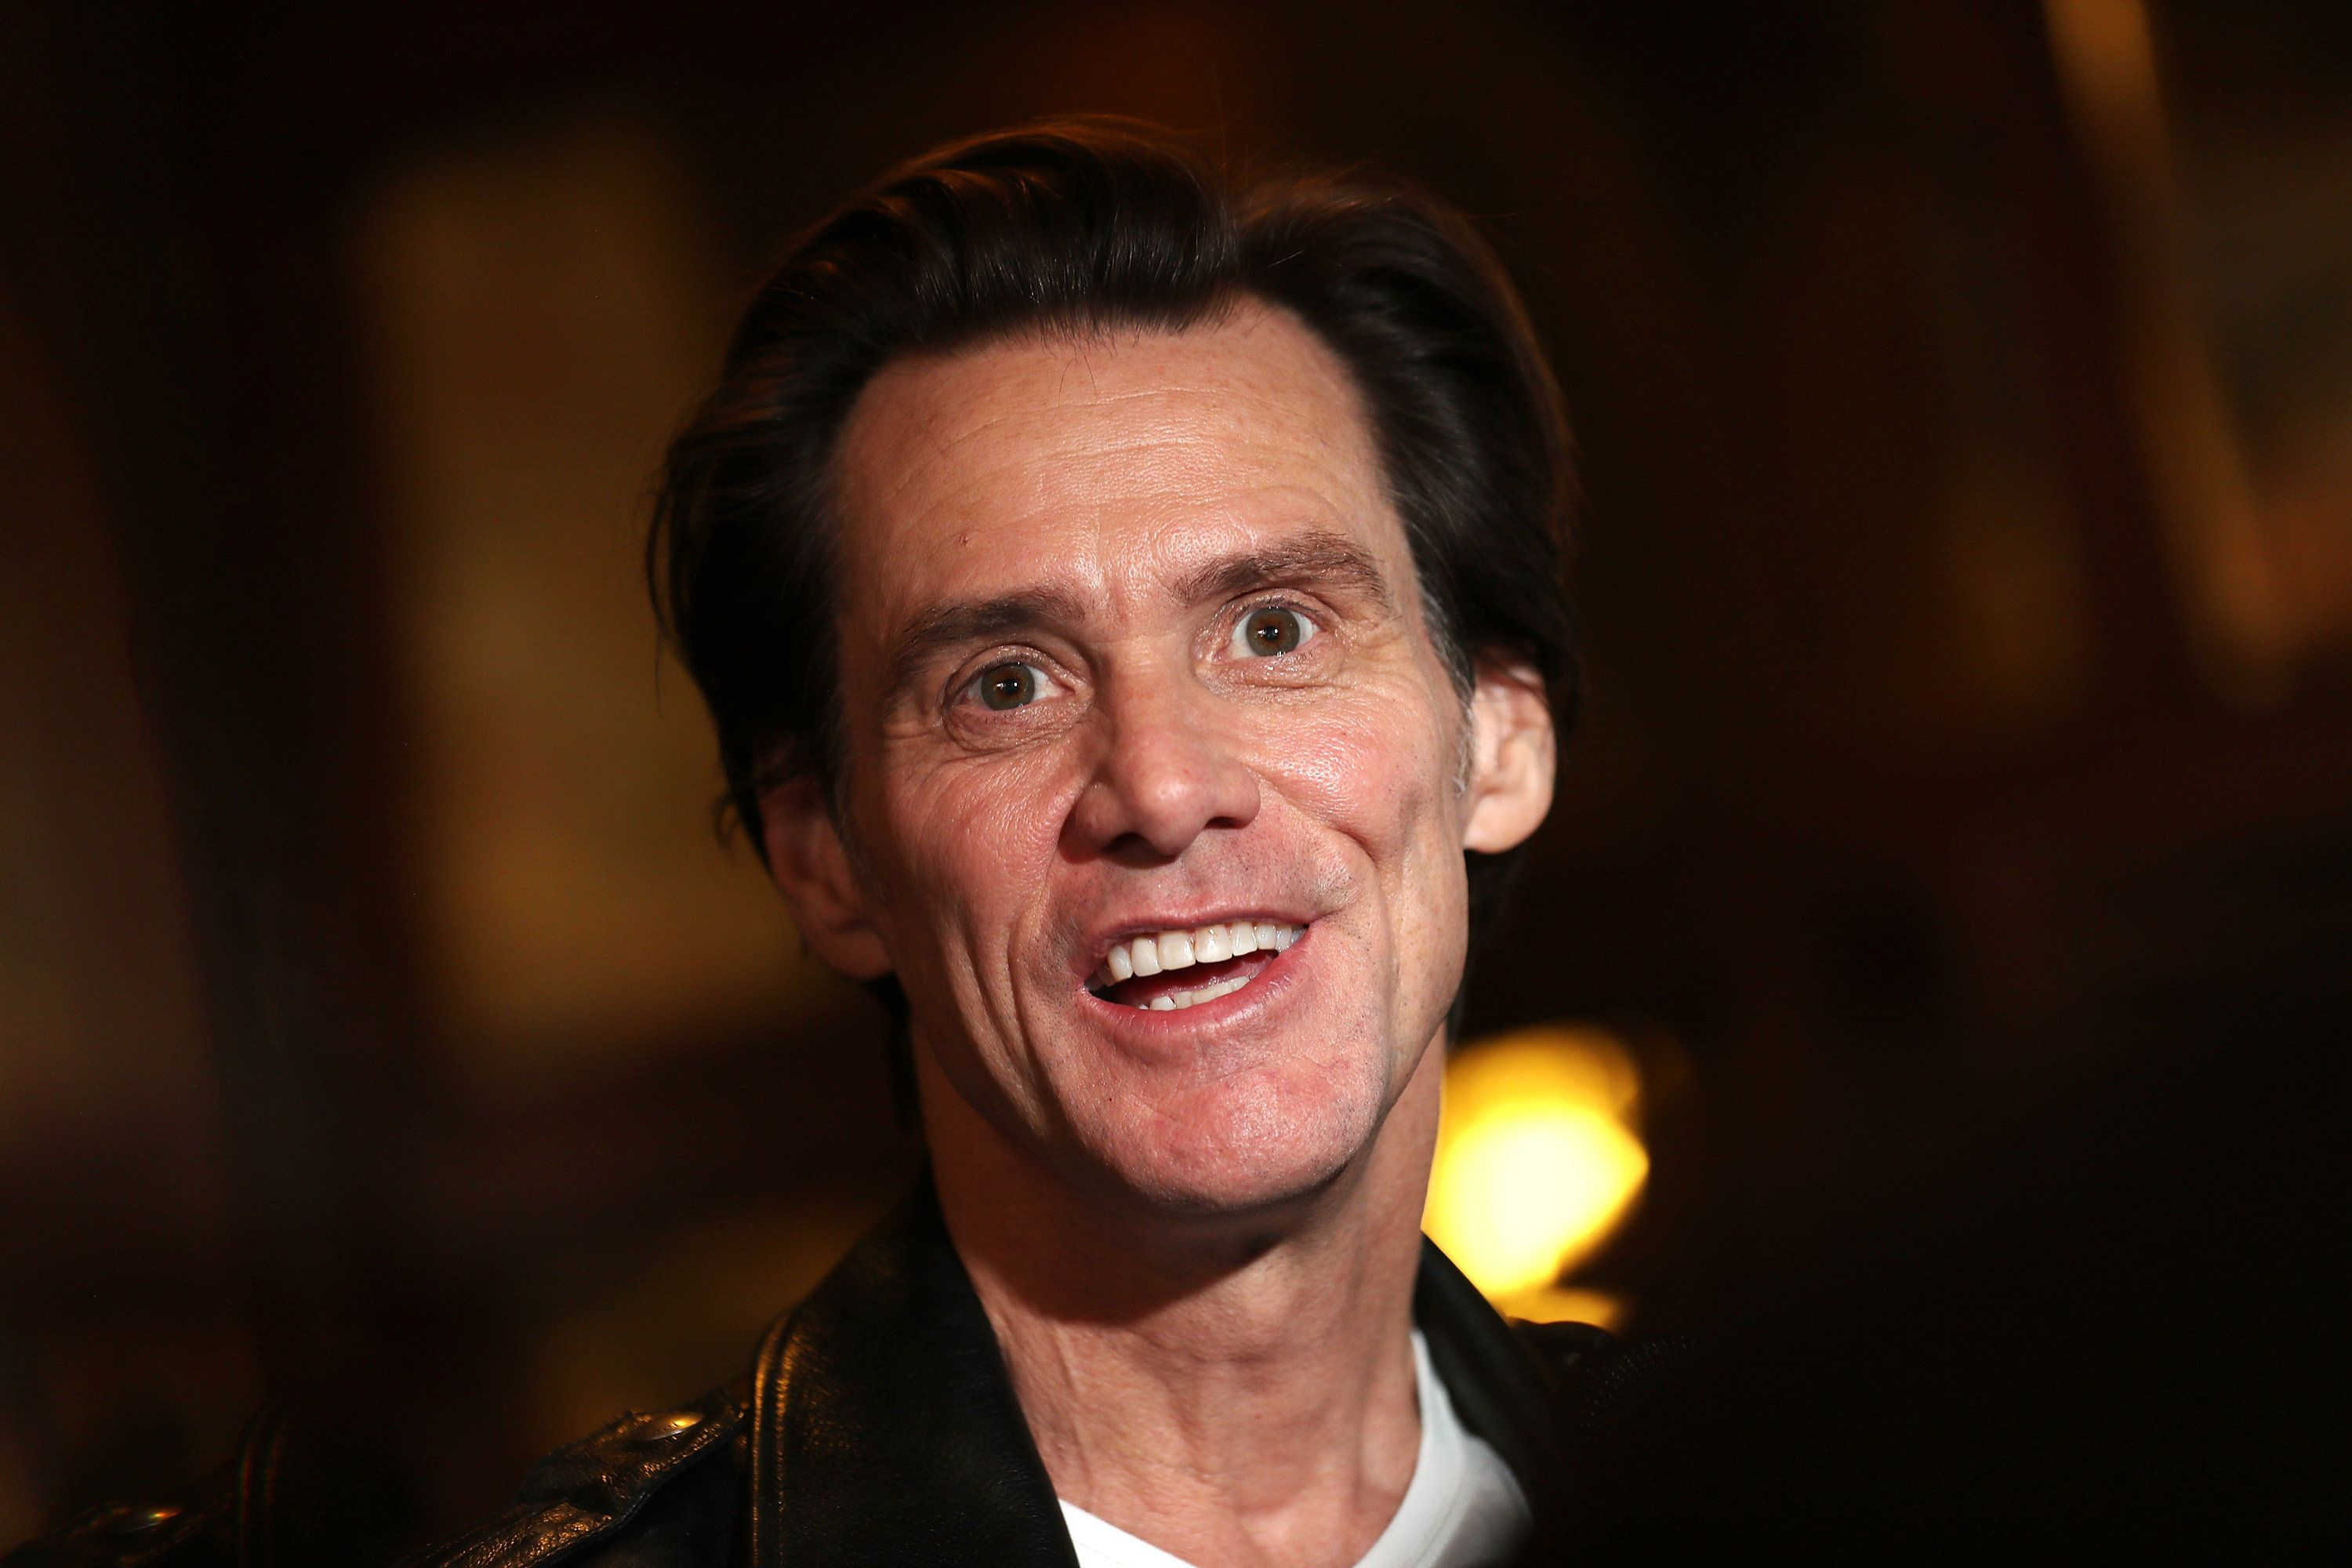 TORONTO, ON - SEPTEMBER 11:  Actor/comedian Jim Carrey speaks to the media at the premiere of 'Jim & Andy: The Great Beyond' during the 2017 Toronto International Film Festival at Winter Garden Theatre on September 11, 2017 in Toronto, Canada.  (Photo by J. Countess/WireImage)